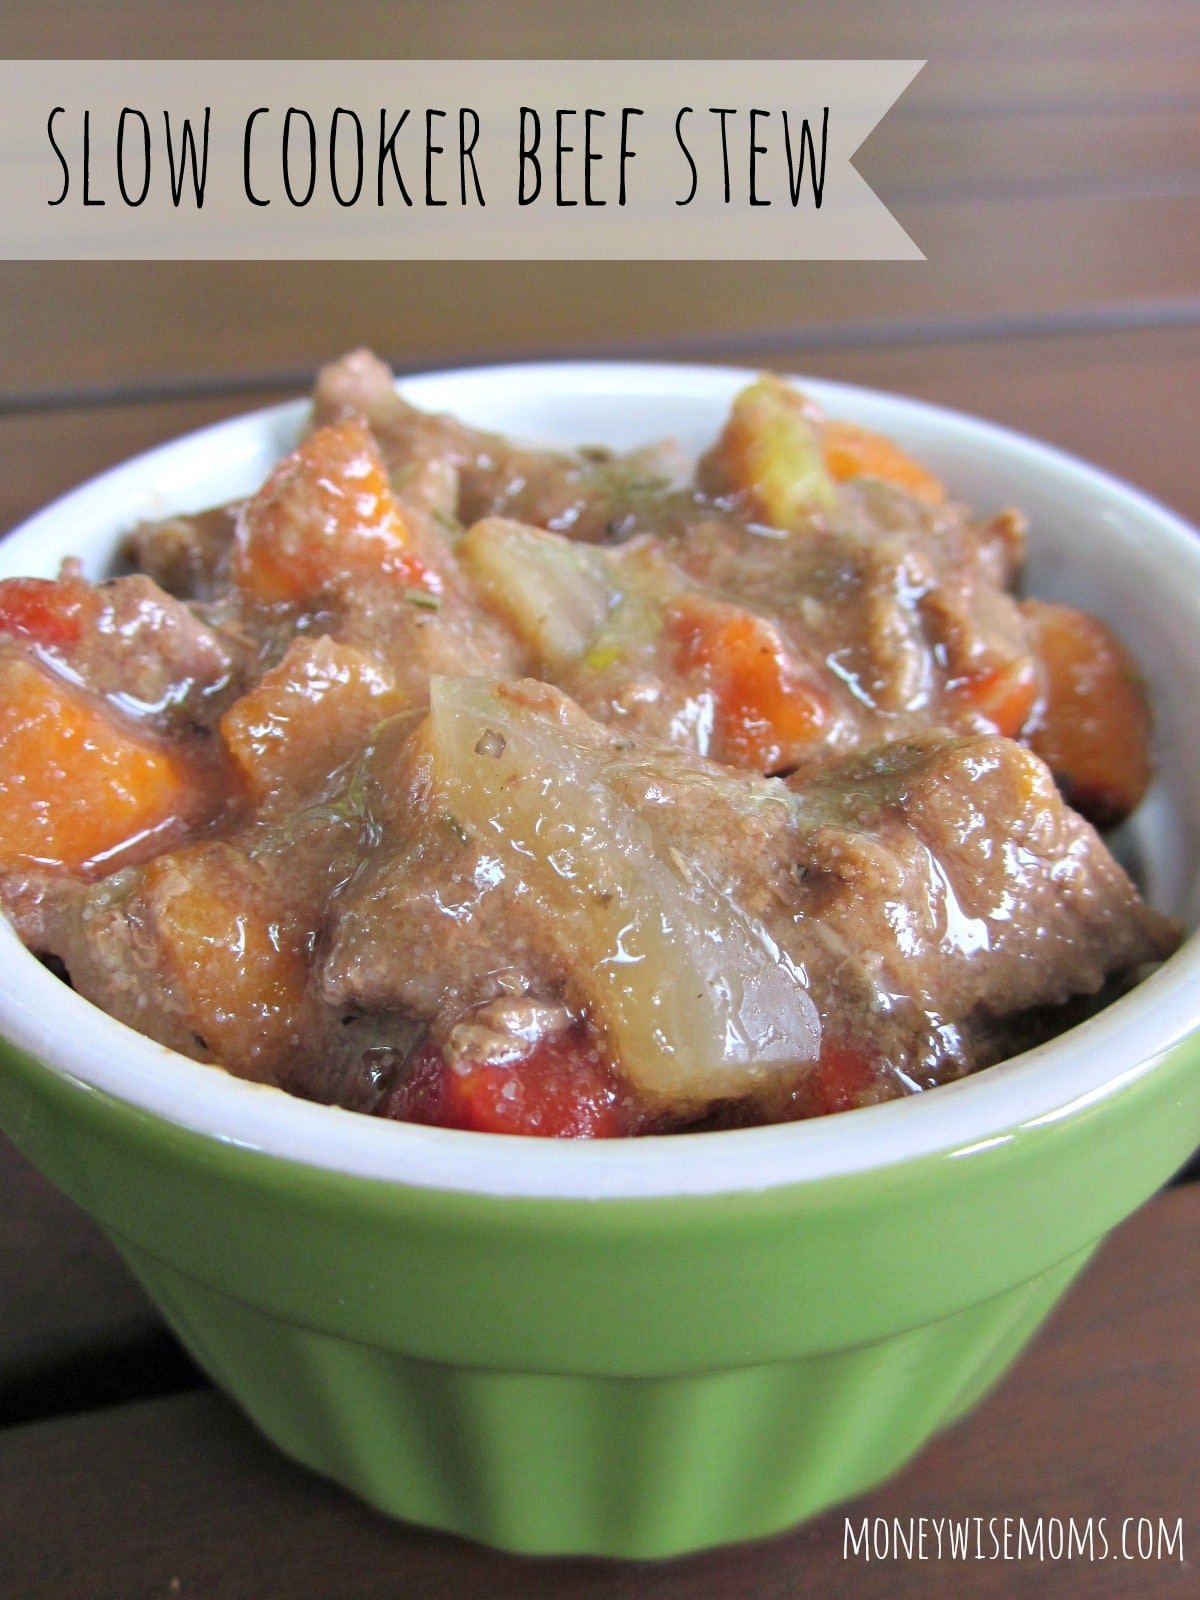 Slow Cooker Beef Stew | A simple recipe for beginner cooks to make a ...